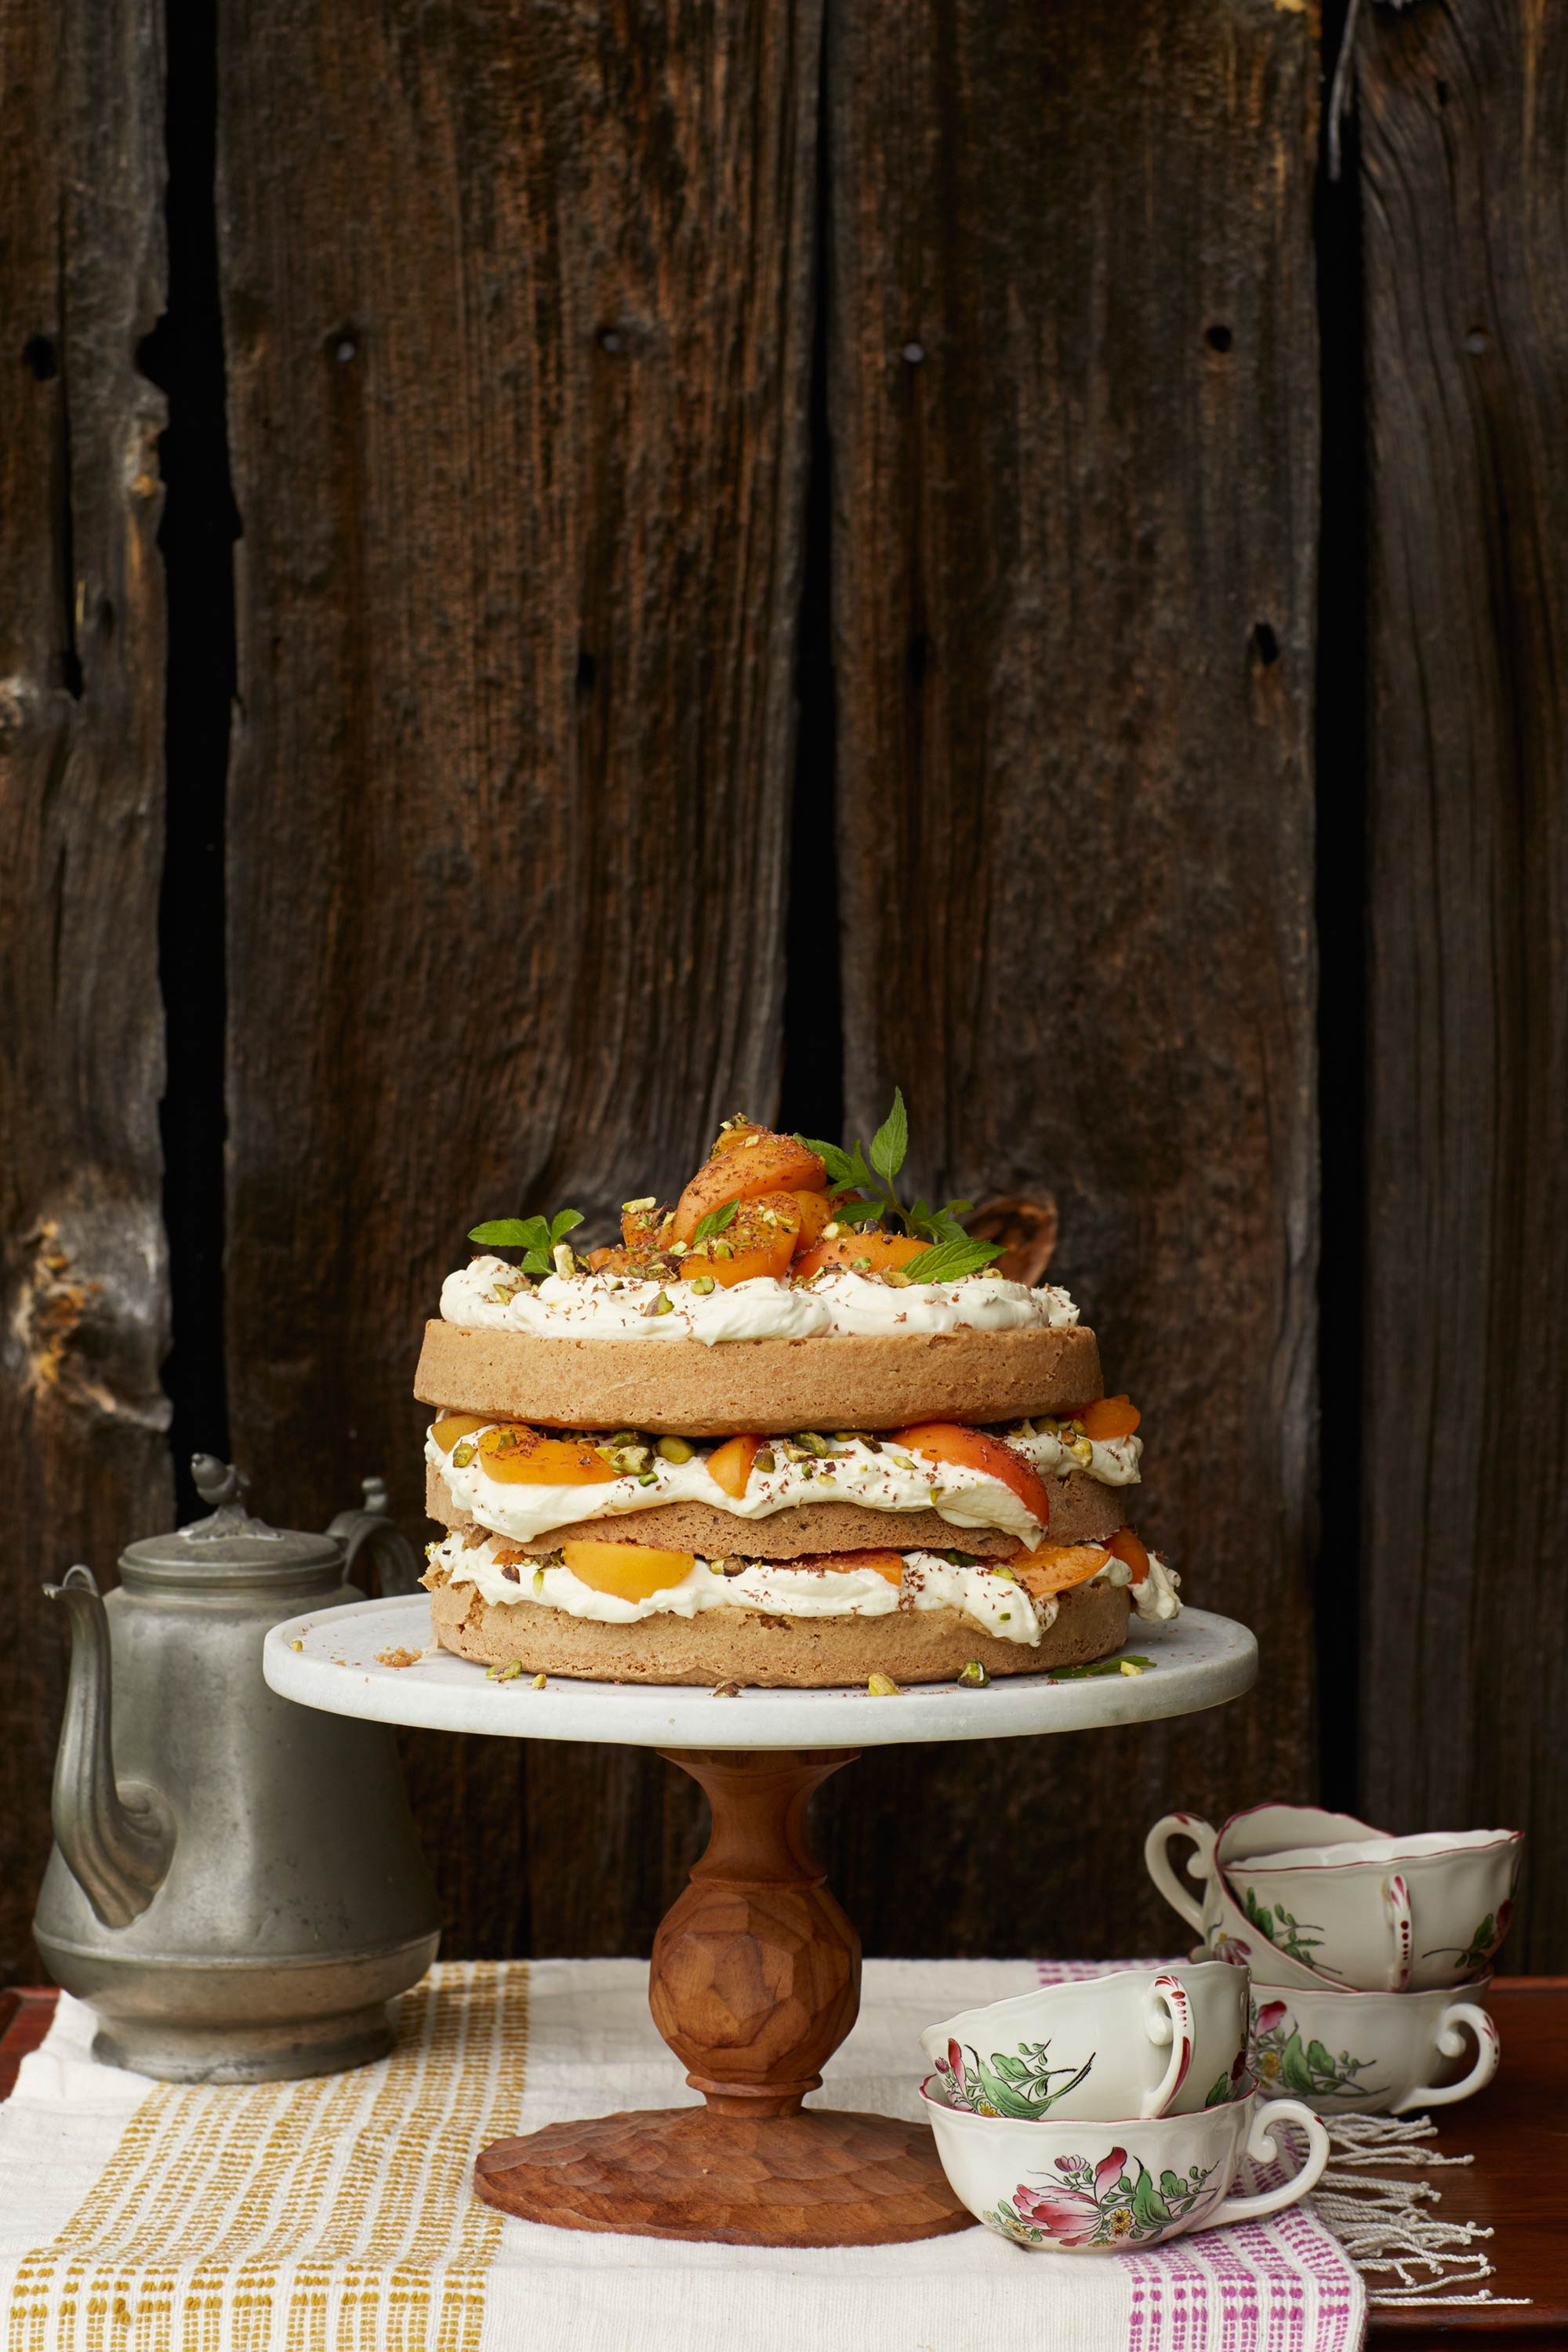 Spring_Apricot_Cake_Molly_Fitzsimons_Prop_Stylist.jpg